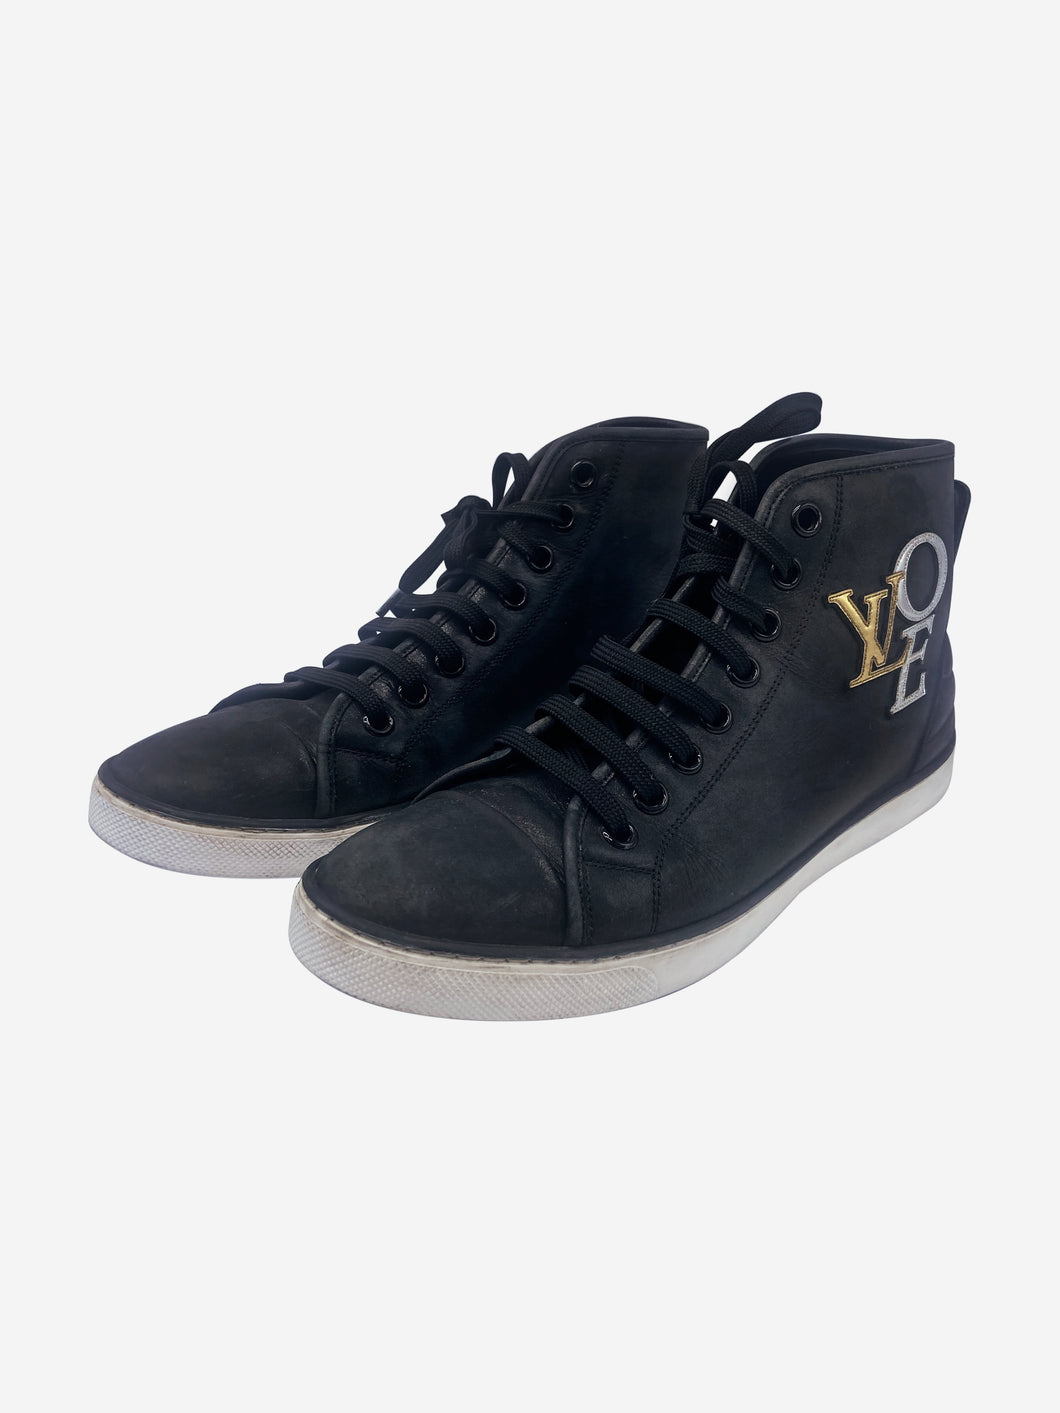 Black high top lace up trainers - size EU 38.5